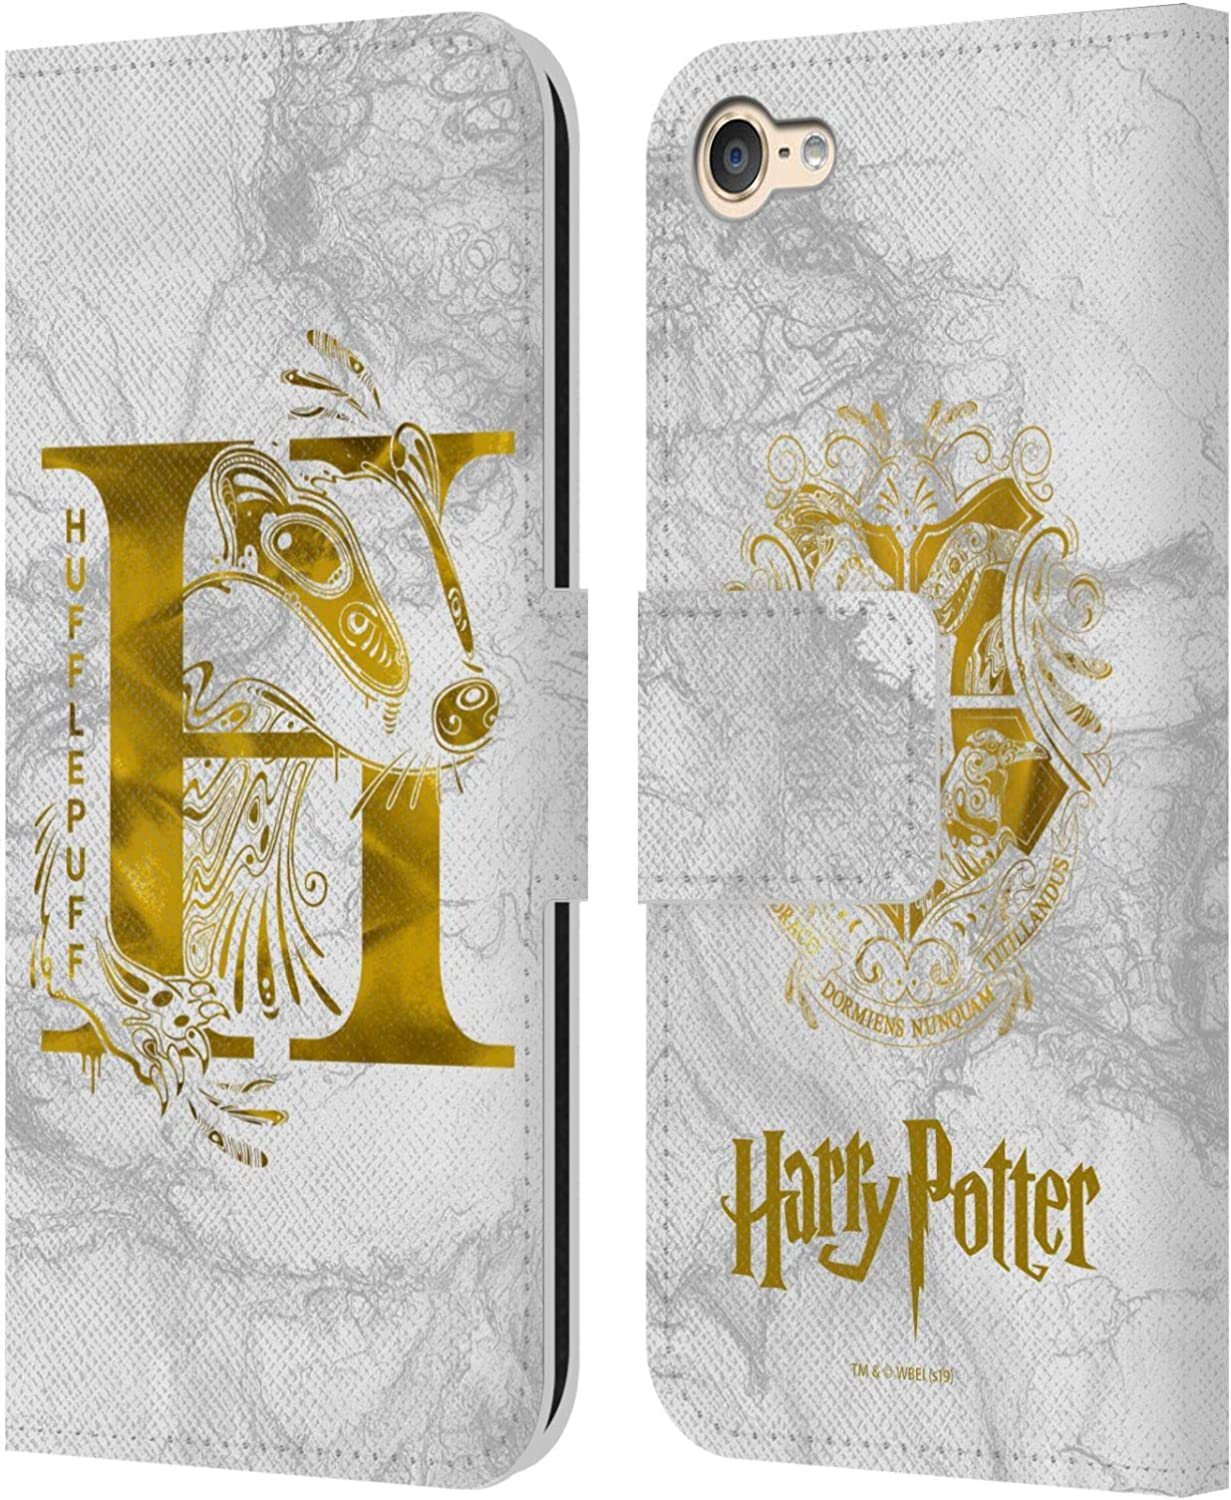 Under blast sales Head Case Designs Officially Licensed Courier shipping free shipping Potter Hufflepuff Ag Harry